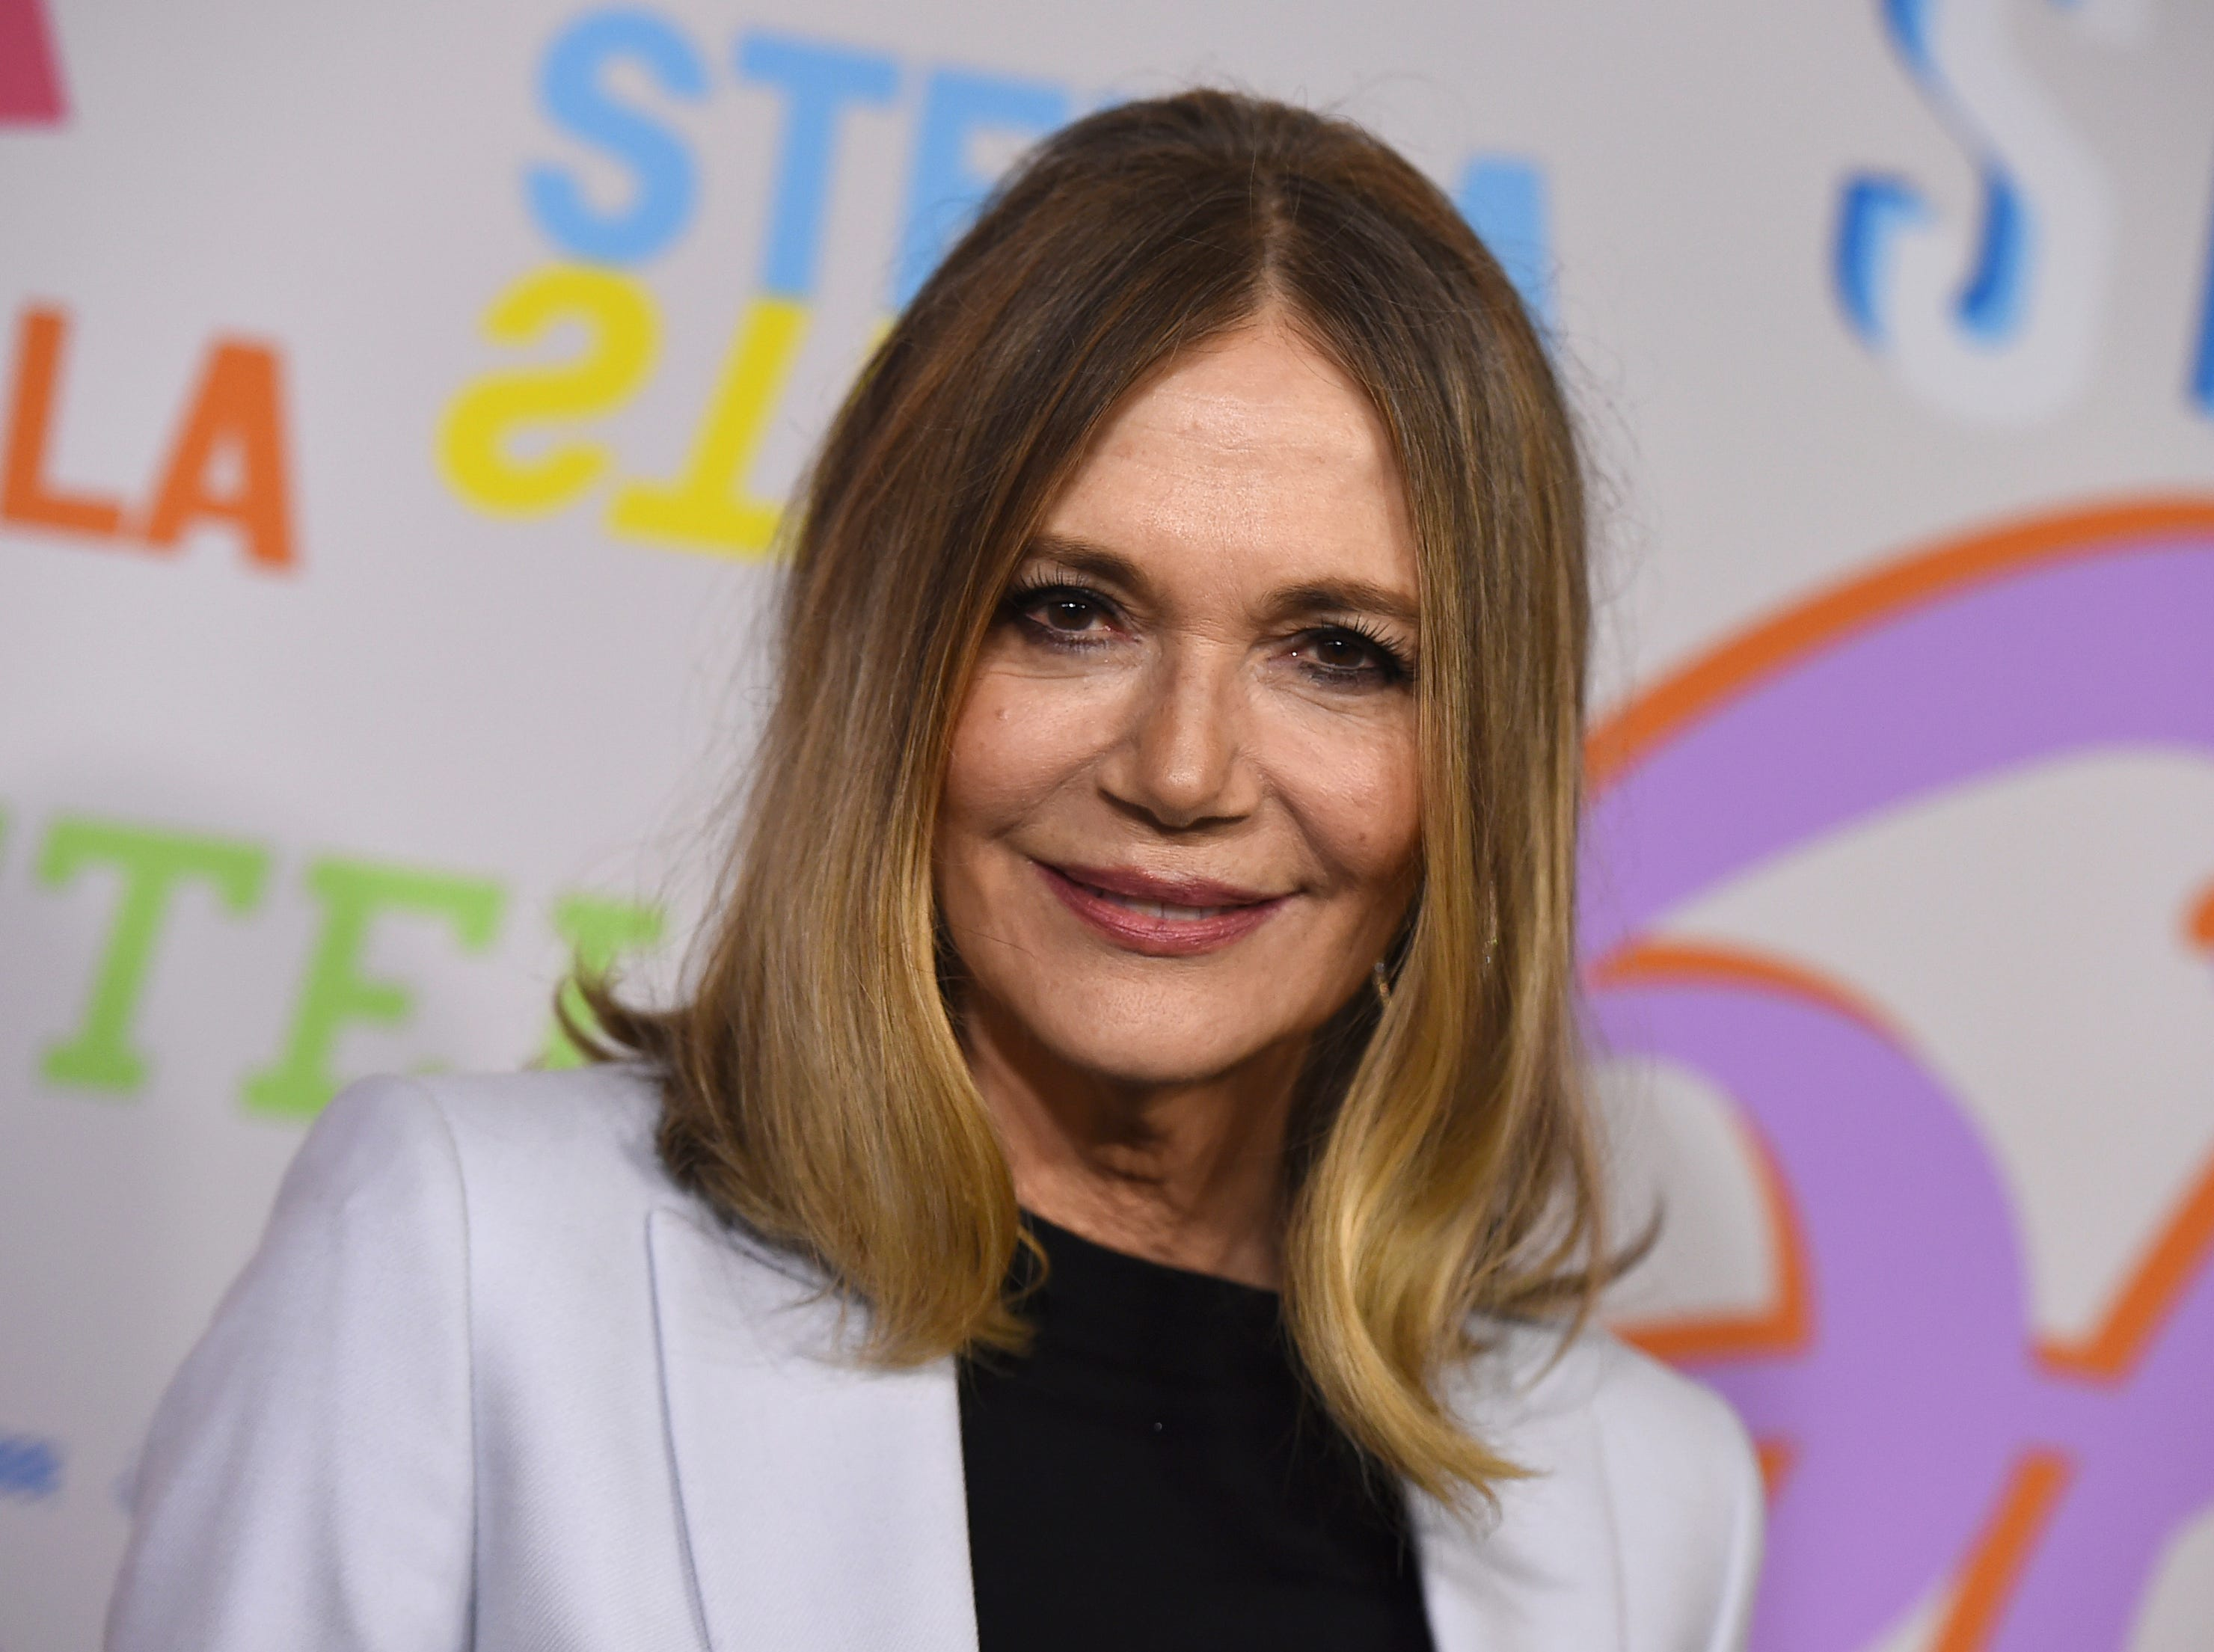 """In this Jan. 16, 2018 file photo, Peggy Lipton arrives at the Stella McCartney Autumn 2018 Presentation in Los Angeles. Lipton, a star of the groundbreaking late 1960s TV show """"The Mod Squad"""" and the 1990s show """"Twin Peaks,"""" has died of cancer at age 72. Lipton's daughters Rashida and Kidada Jones say in a statement that Lipton died Saturday, May 11, 2019, surrounded by her family."""